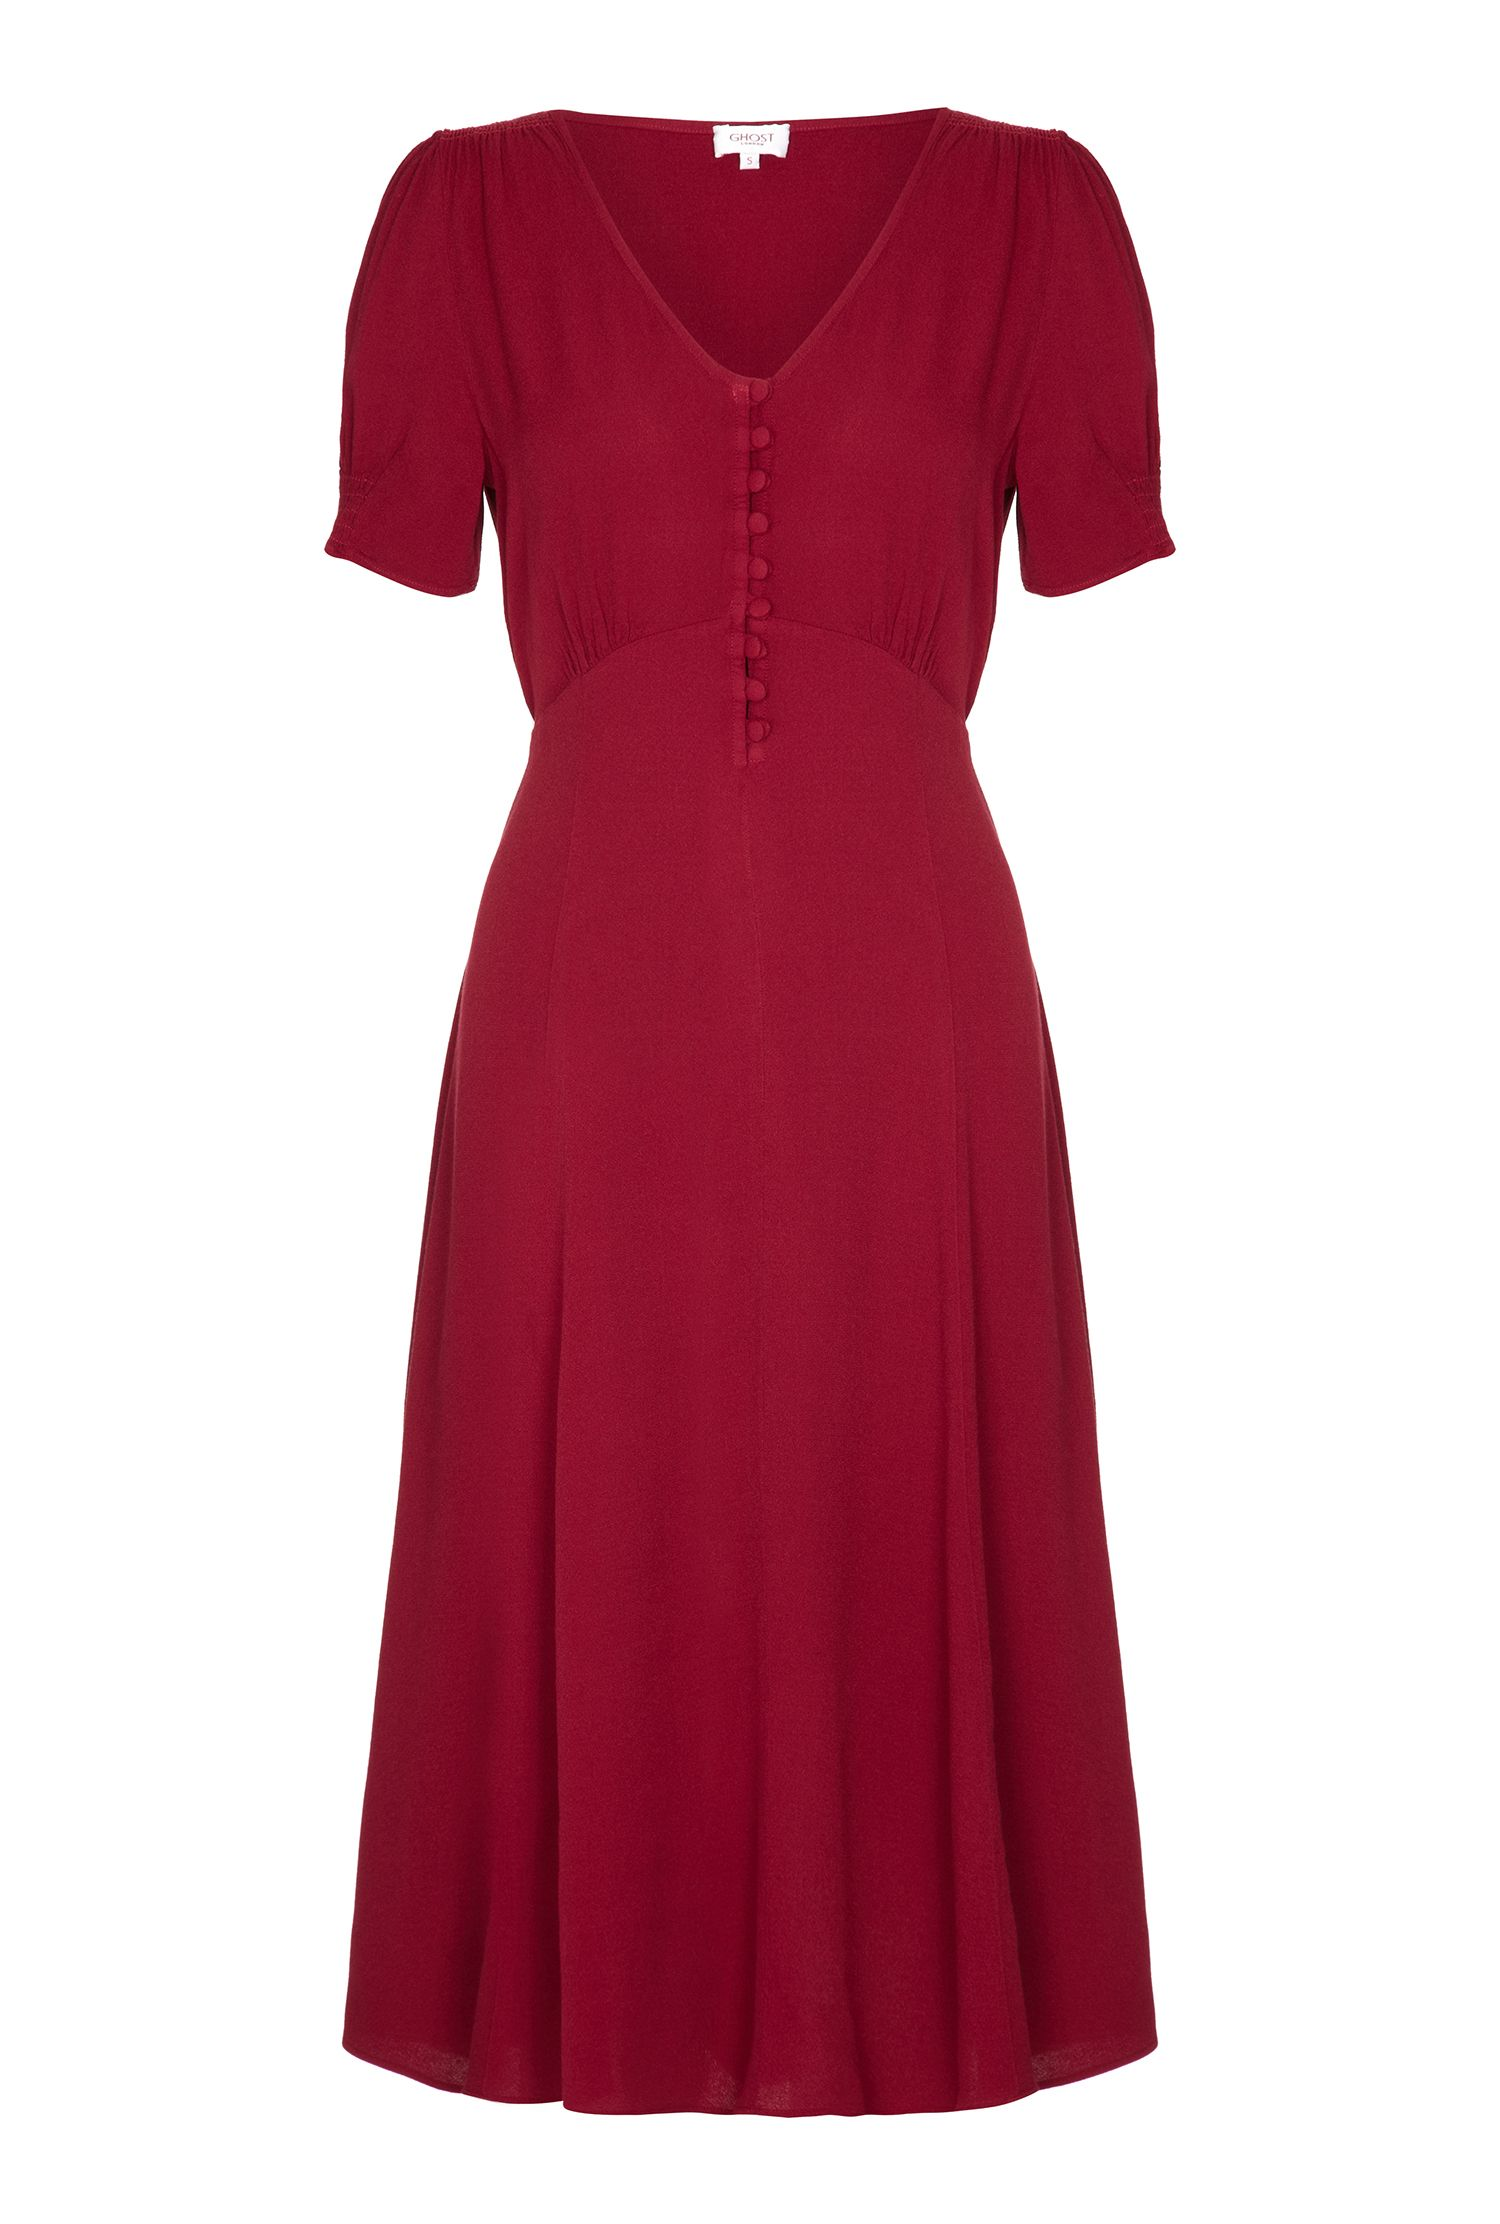 1940s Style Dresses | 40s Dress, Swing Dress Ghost Keira Dress £95.00 AT vintagedancer.com